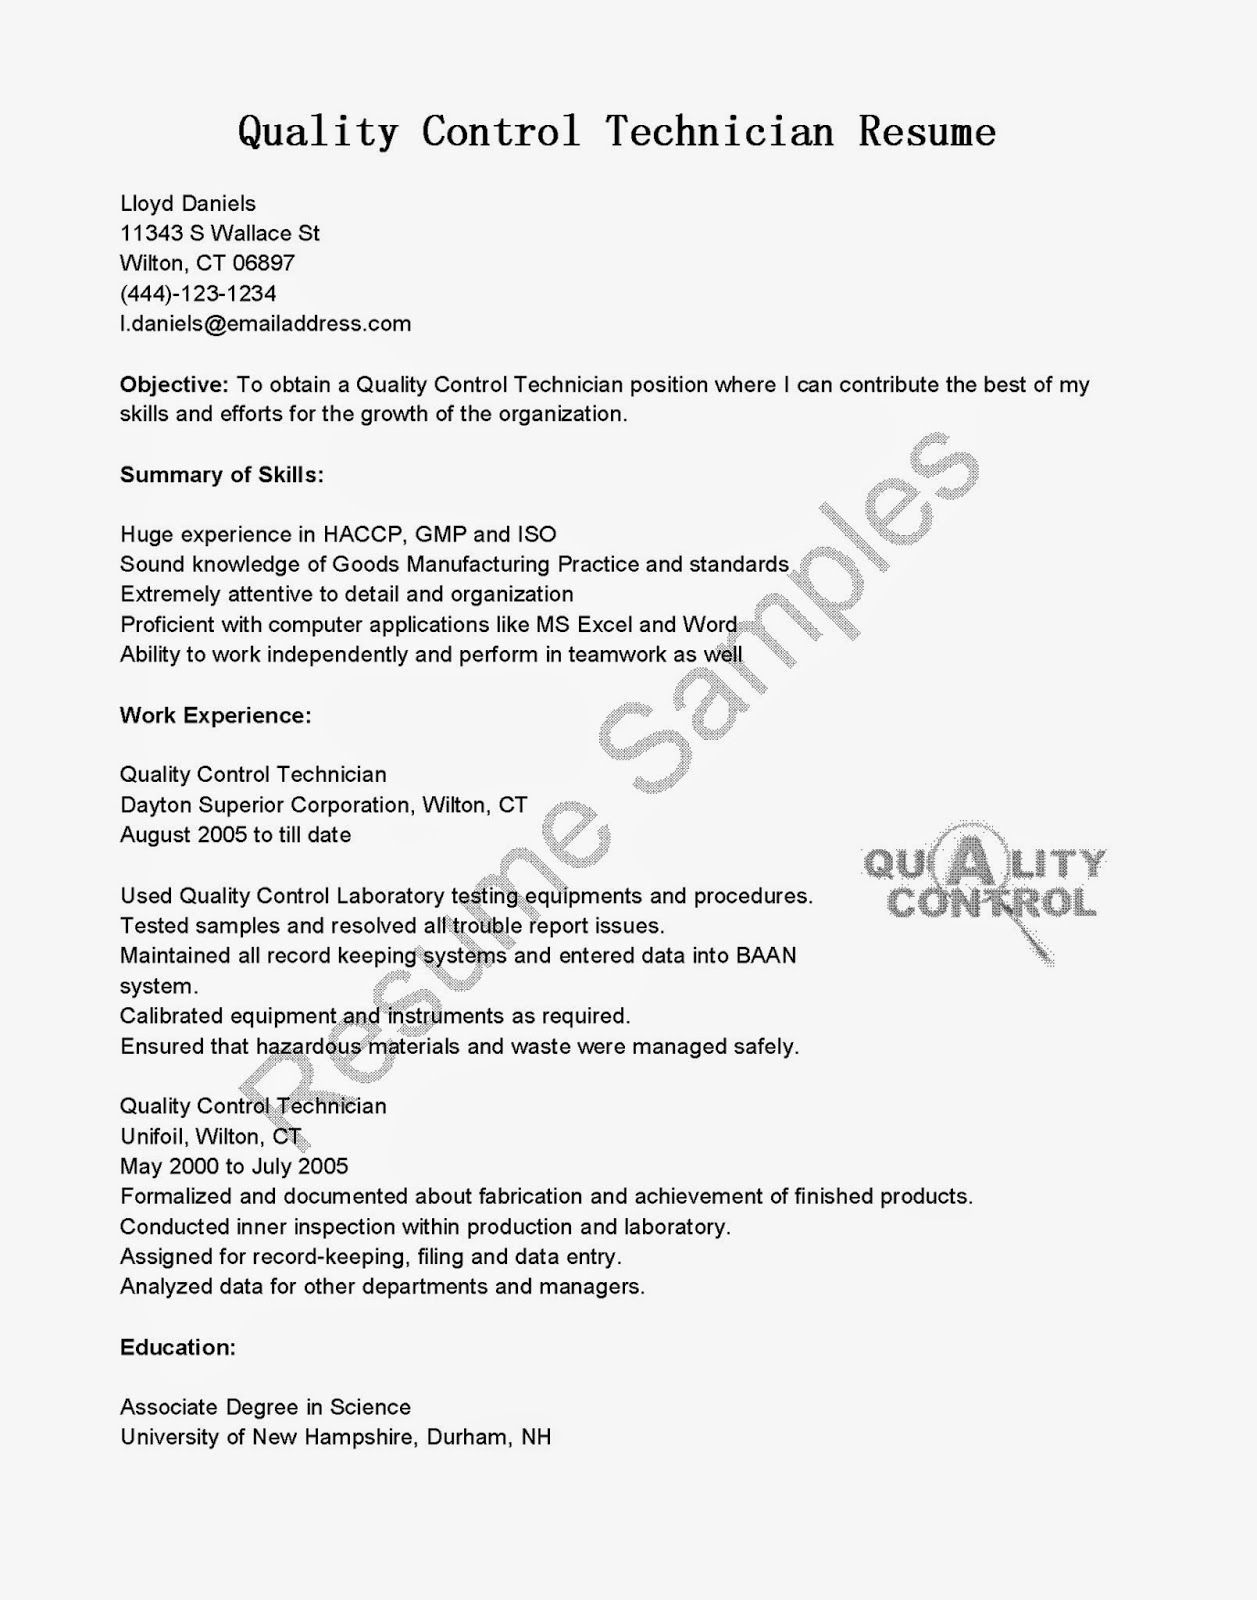 resume with cover letter example graduate quality control